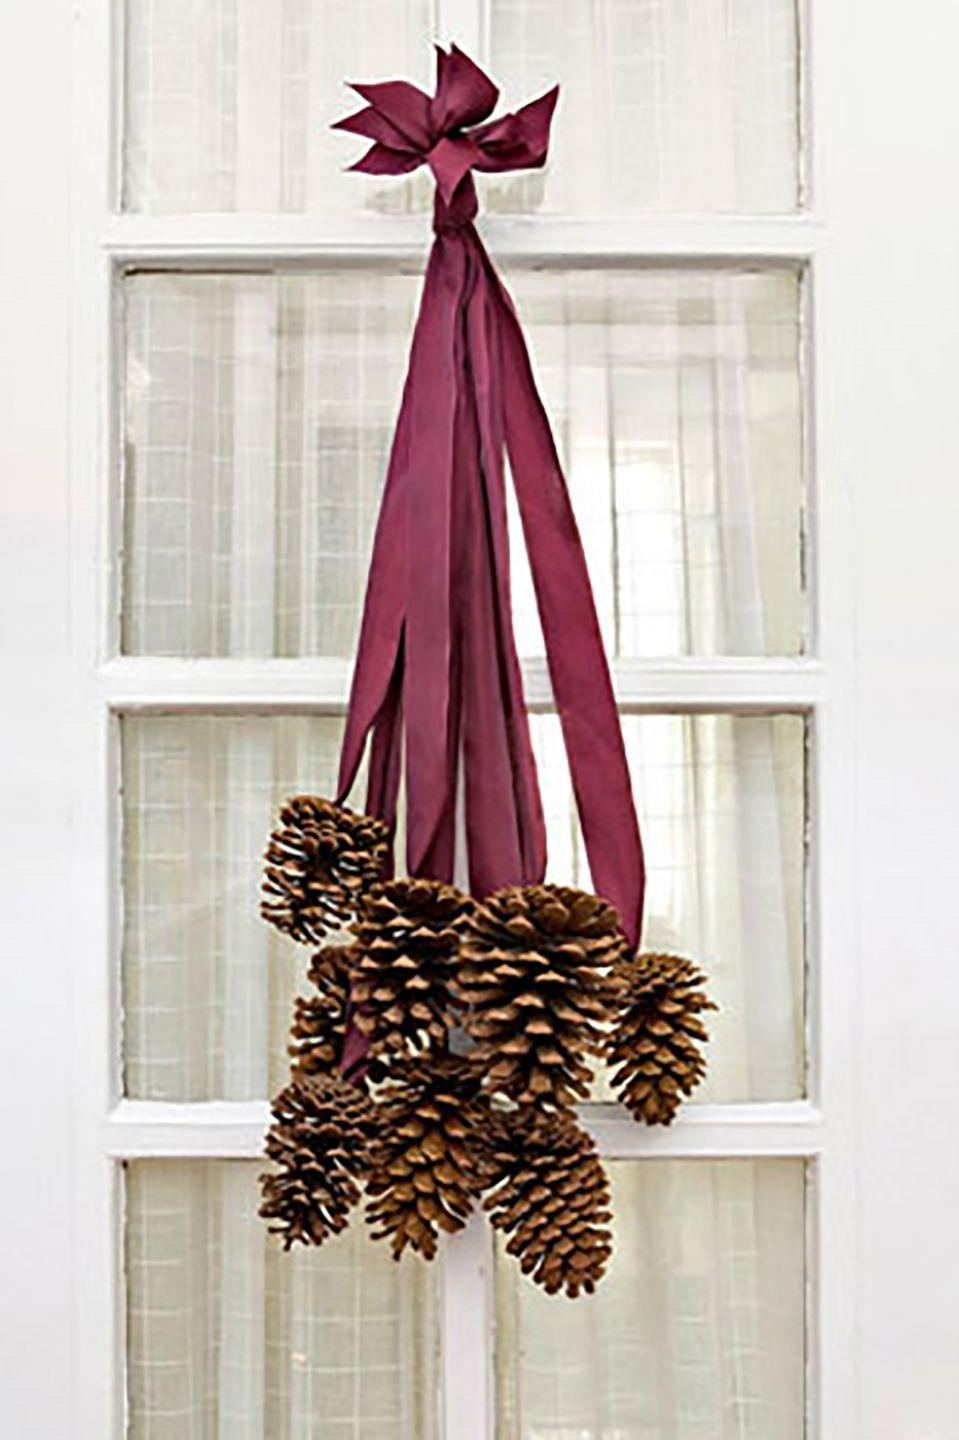 """<p>Not all DIY front-door decor requires a foam wreath form. To make this elegant cluster, we selected 8 four- to six-inch pinecones and 8 two-foot-long pieces of silk ribbon. Use a hot-glue gun to adhere the last two inches of each ribbon to the base of a cone. After the glue dries, collect all the ribbon ends and stagger them so that the cones fall at varying lengths. Tie the ribbon ends together in a knot, trim the tips so they are uniform, and slip the knot over a finishing nail. </p><p><a class=""""link rapid-noclick-resp"""" href=""""https://www.amazon.com/Bulk-Package-Natural-Pinecones-24-Pack/dp/B077PNQTY3/ref=sr_1_3?tag=syn-yahoo-20&ascsubtag=%5Bartid%7C10050.g.1371%5Bsrc%7Cyahoo-us"""" rel=""""nofollow noopener"""" target=""""_blank"""" data-ylk=""""slk:SHOP PINE CONES"""">SHOP PINE CONES</a></p>"""